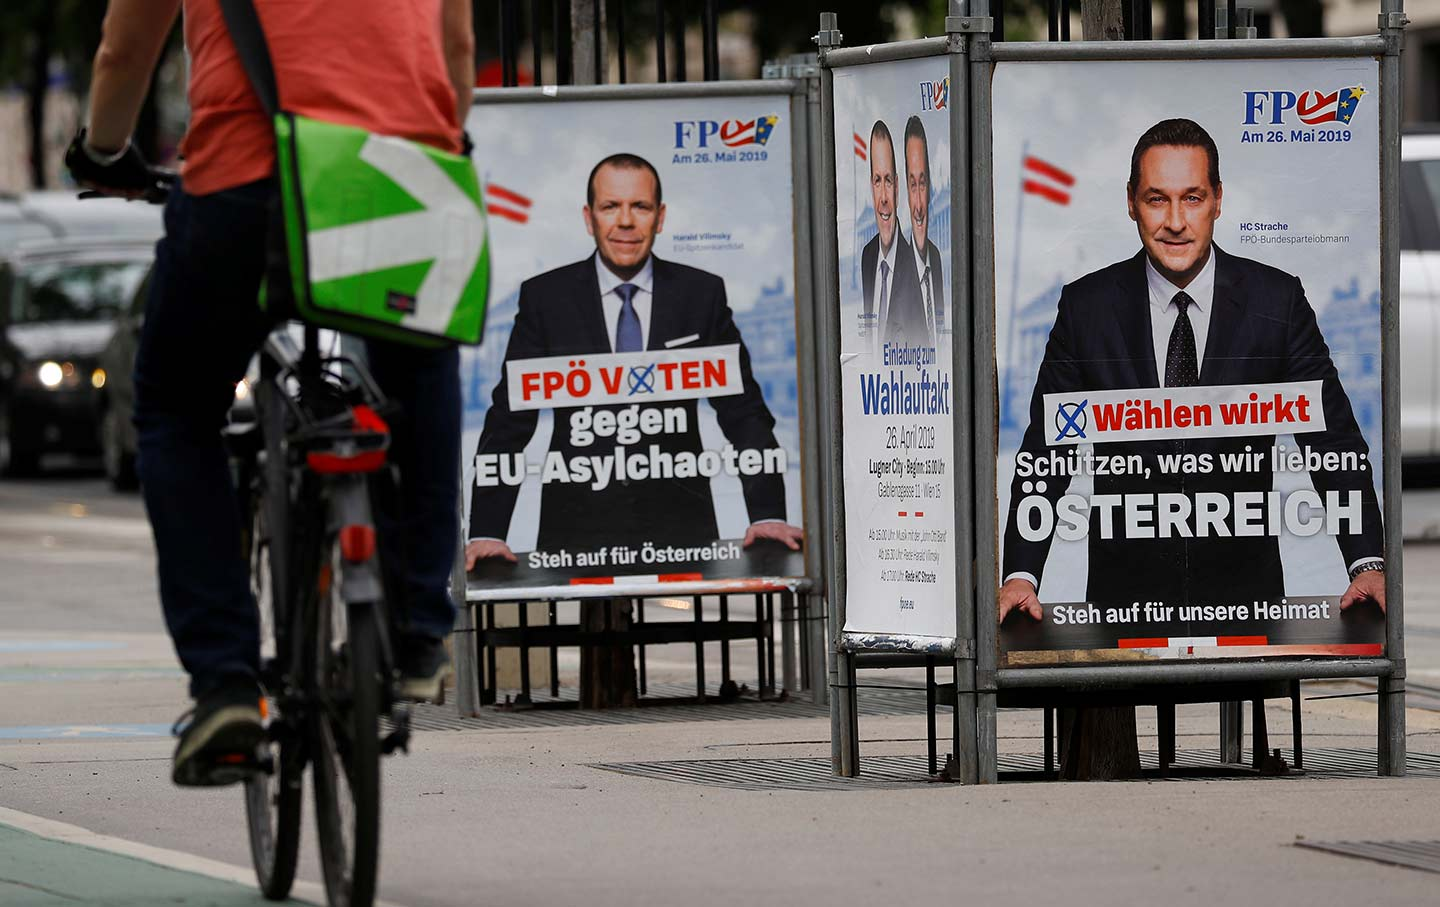 Austrian Freedom Party campaign posters